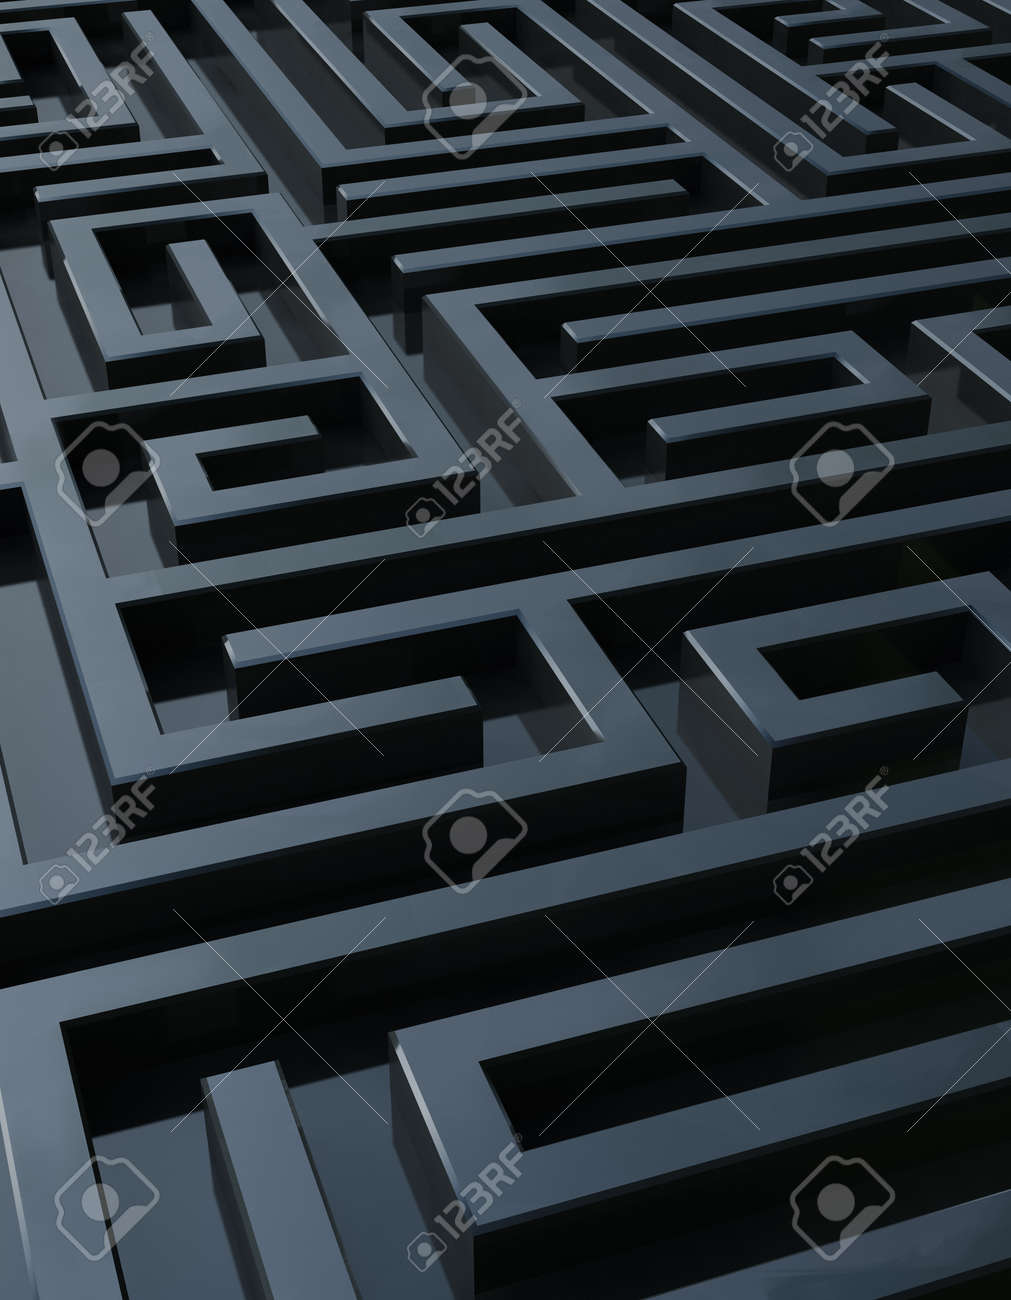 Full Frame Rendering Of A Dark Maze Stock Photo, Picture And Royalty ...